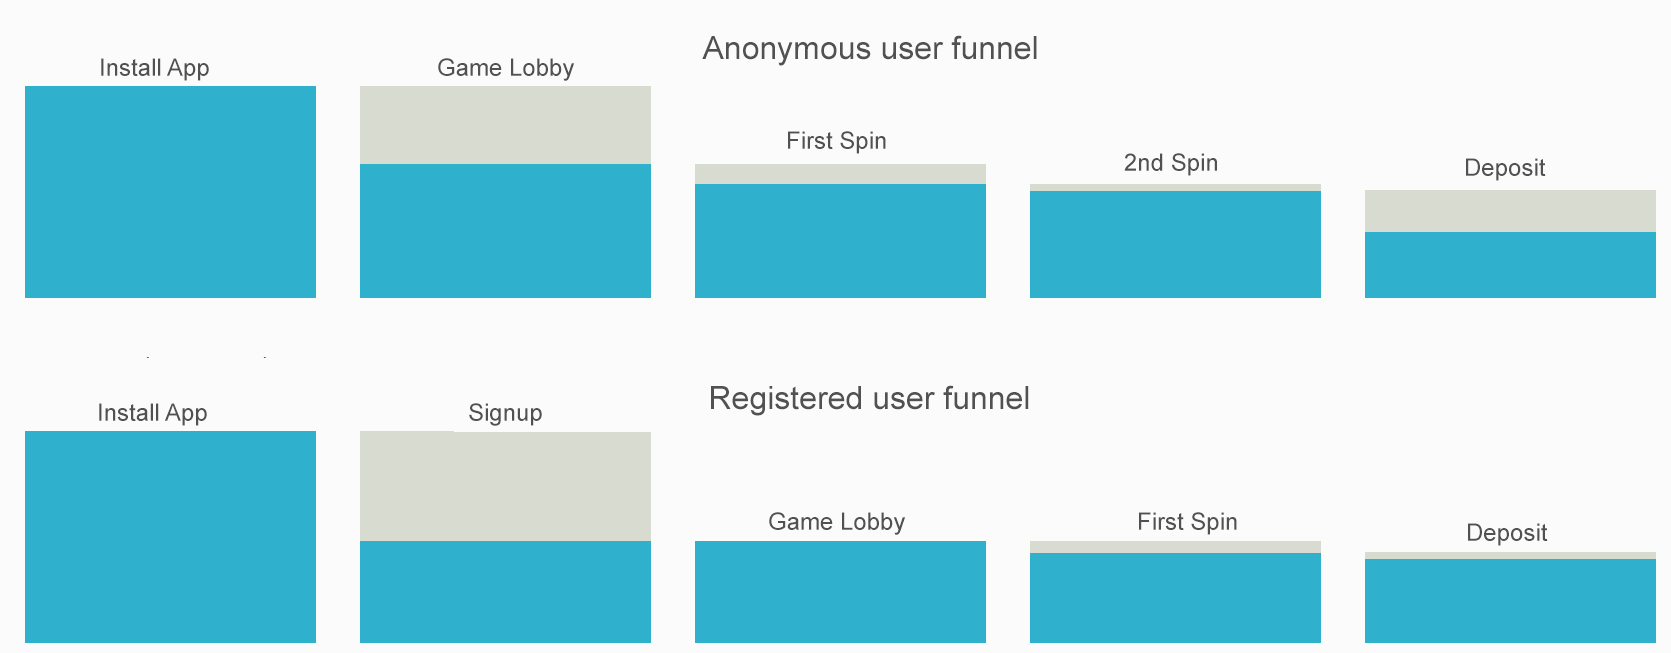 Funnel analysis unified user identities